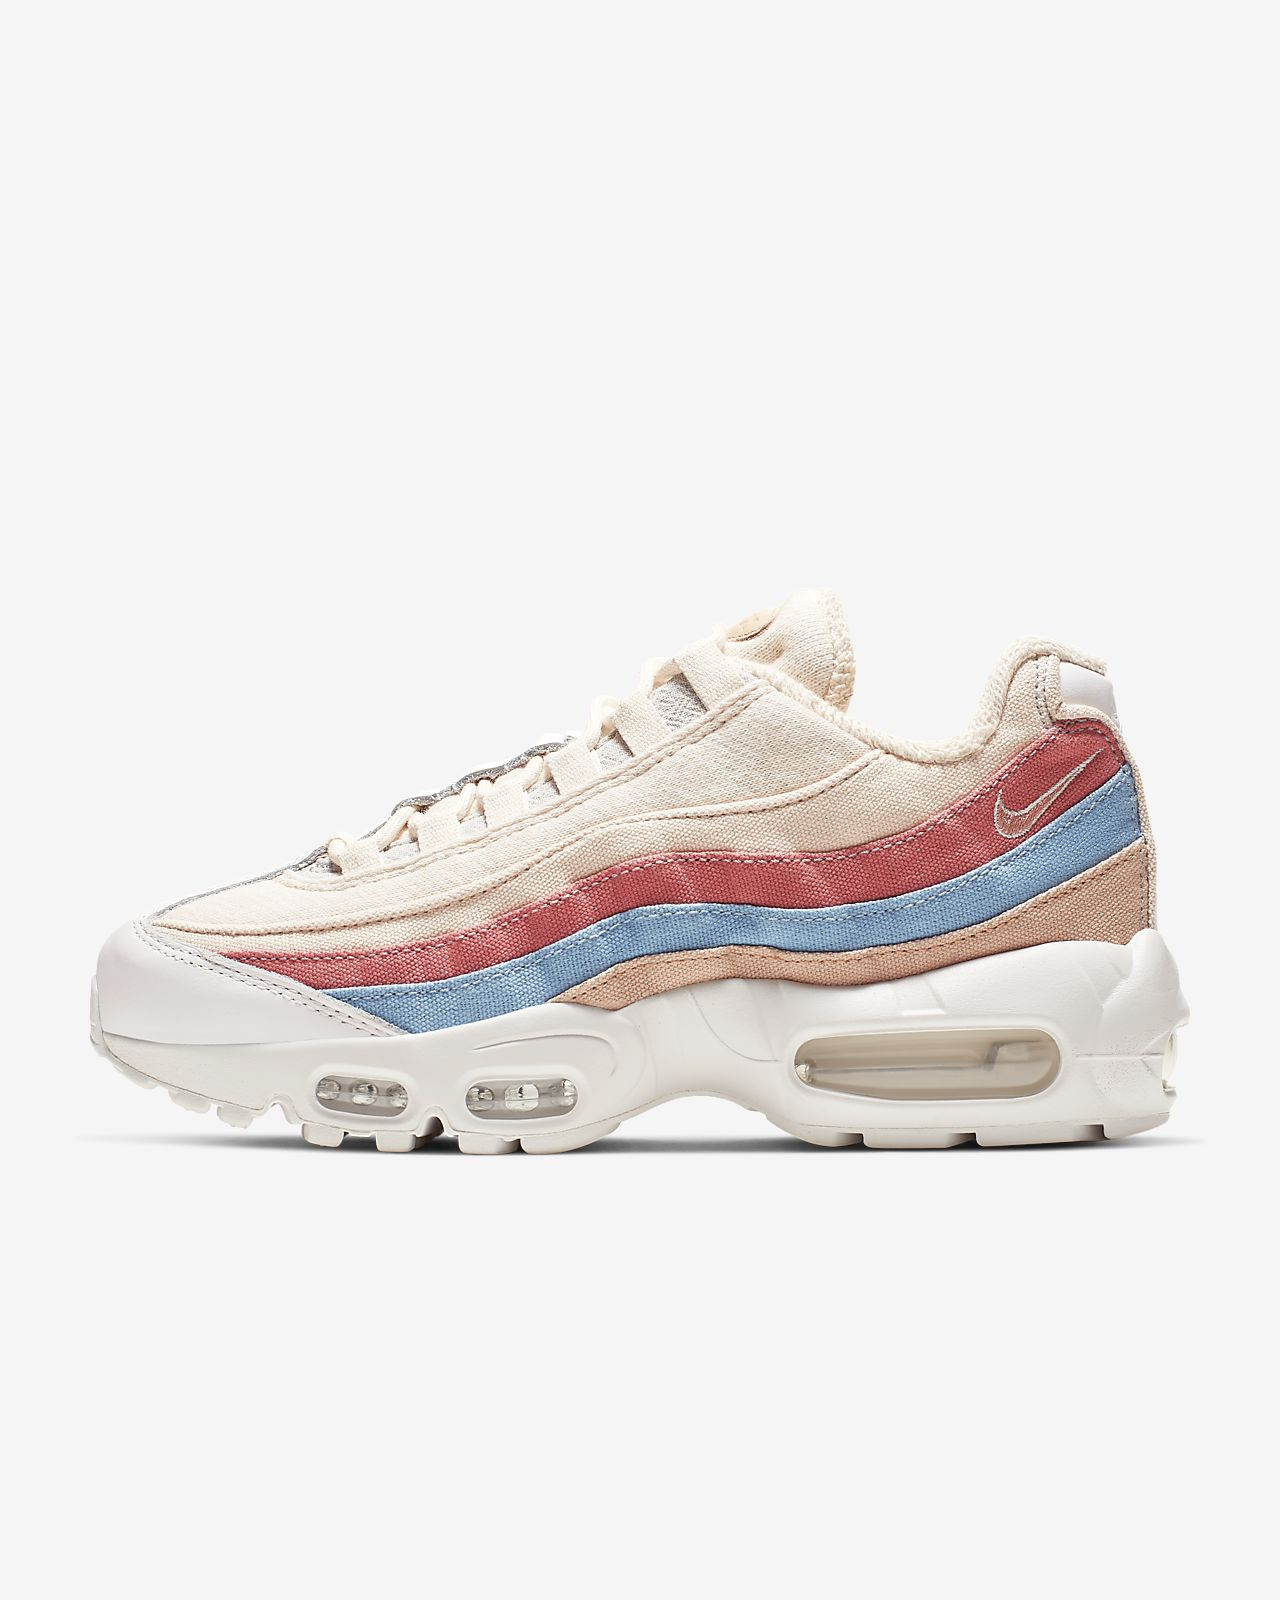 Nike Air Max 95 QS Women's Shoe